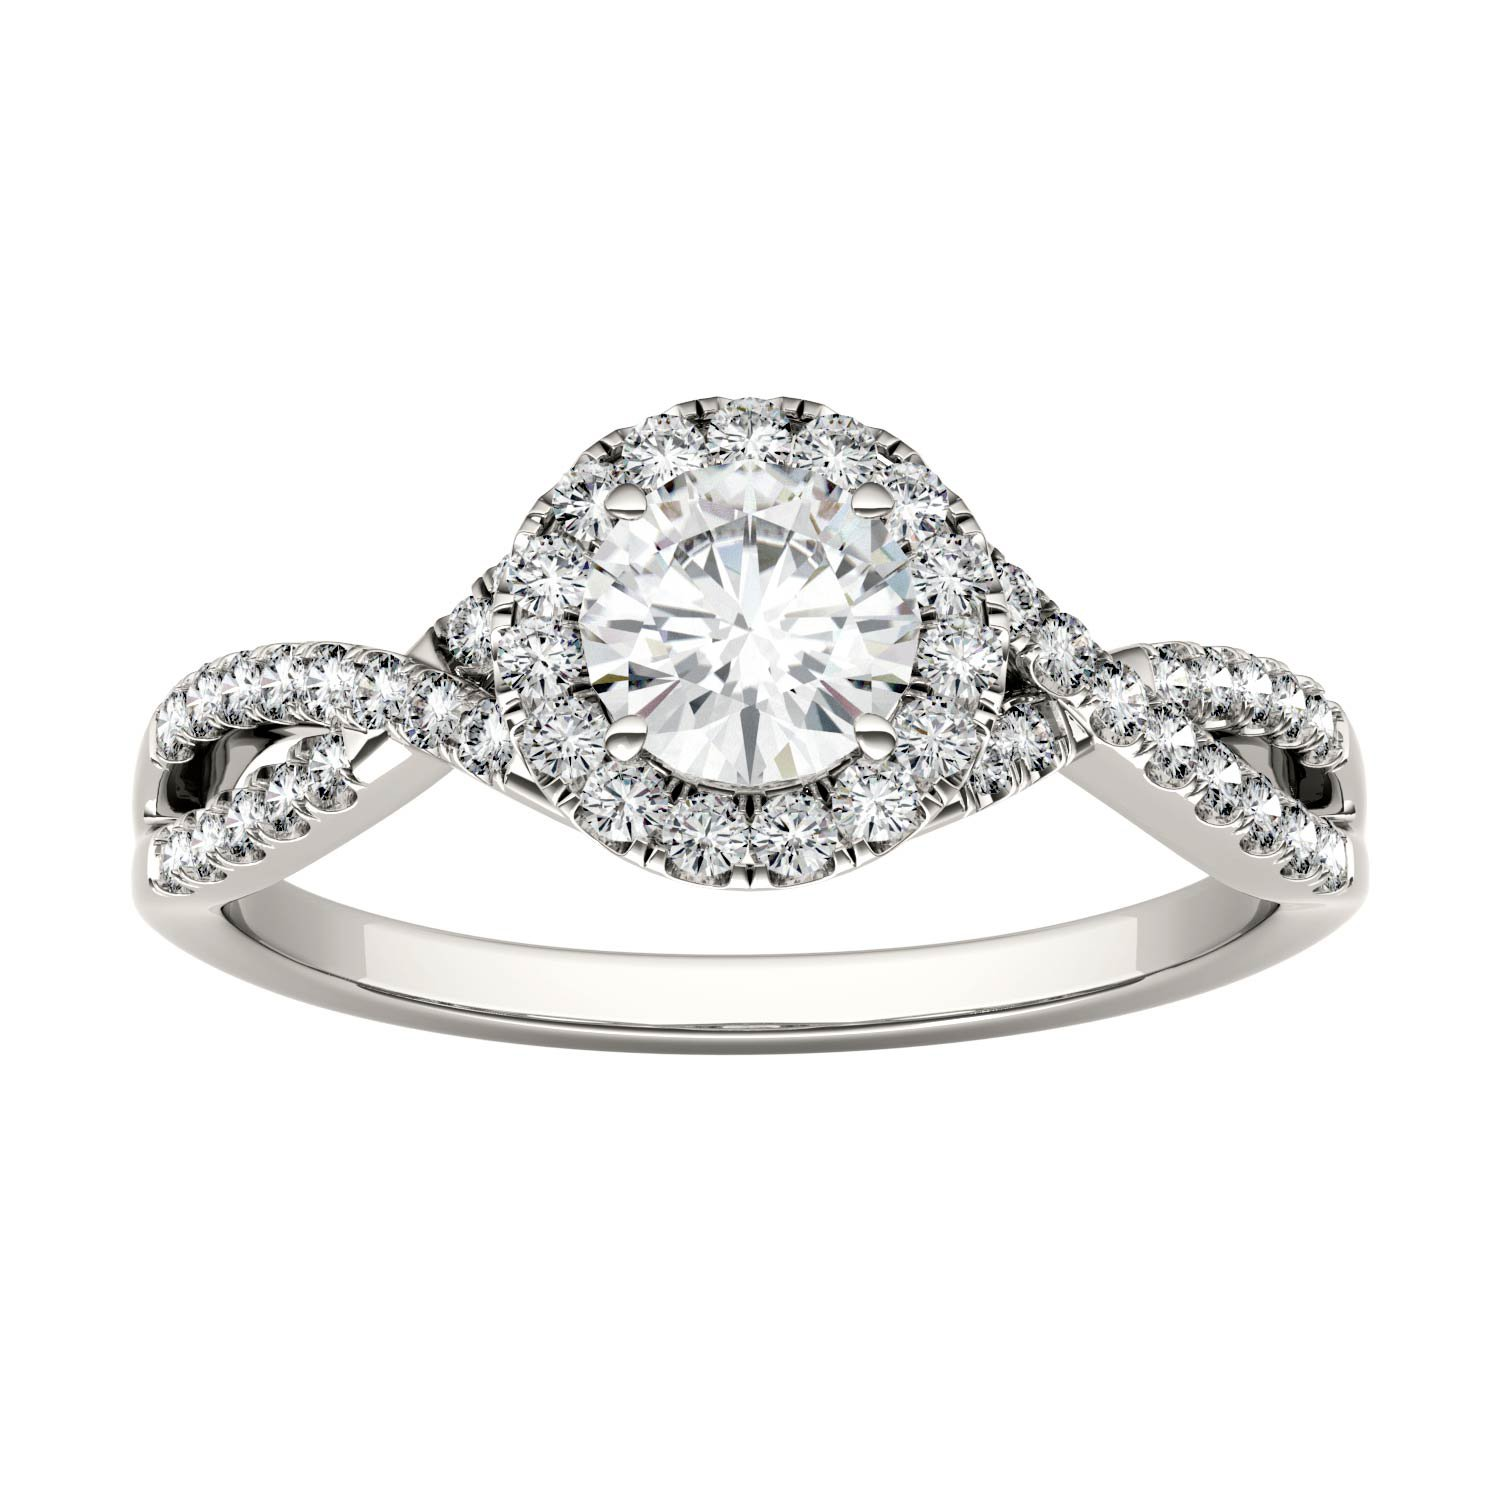 Forever Brilliant Round 5.0mm Moissanite Engagement Ring-size 7, 0.95cttw DEW By Charles & Colvard